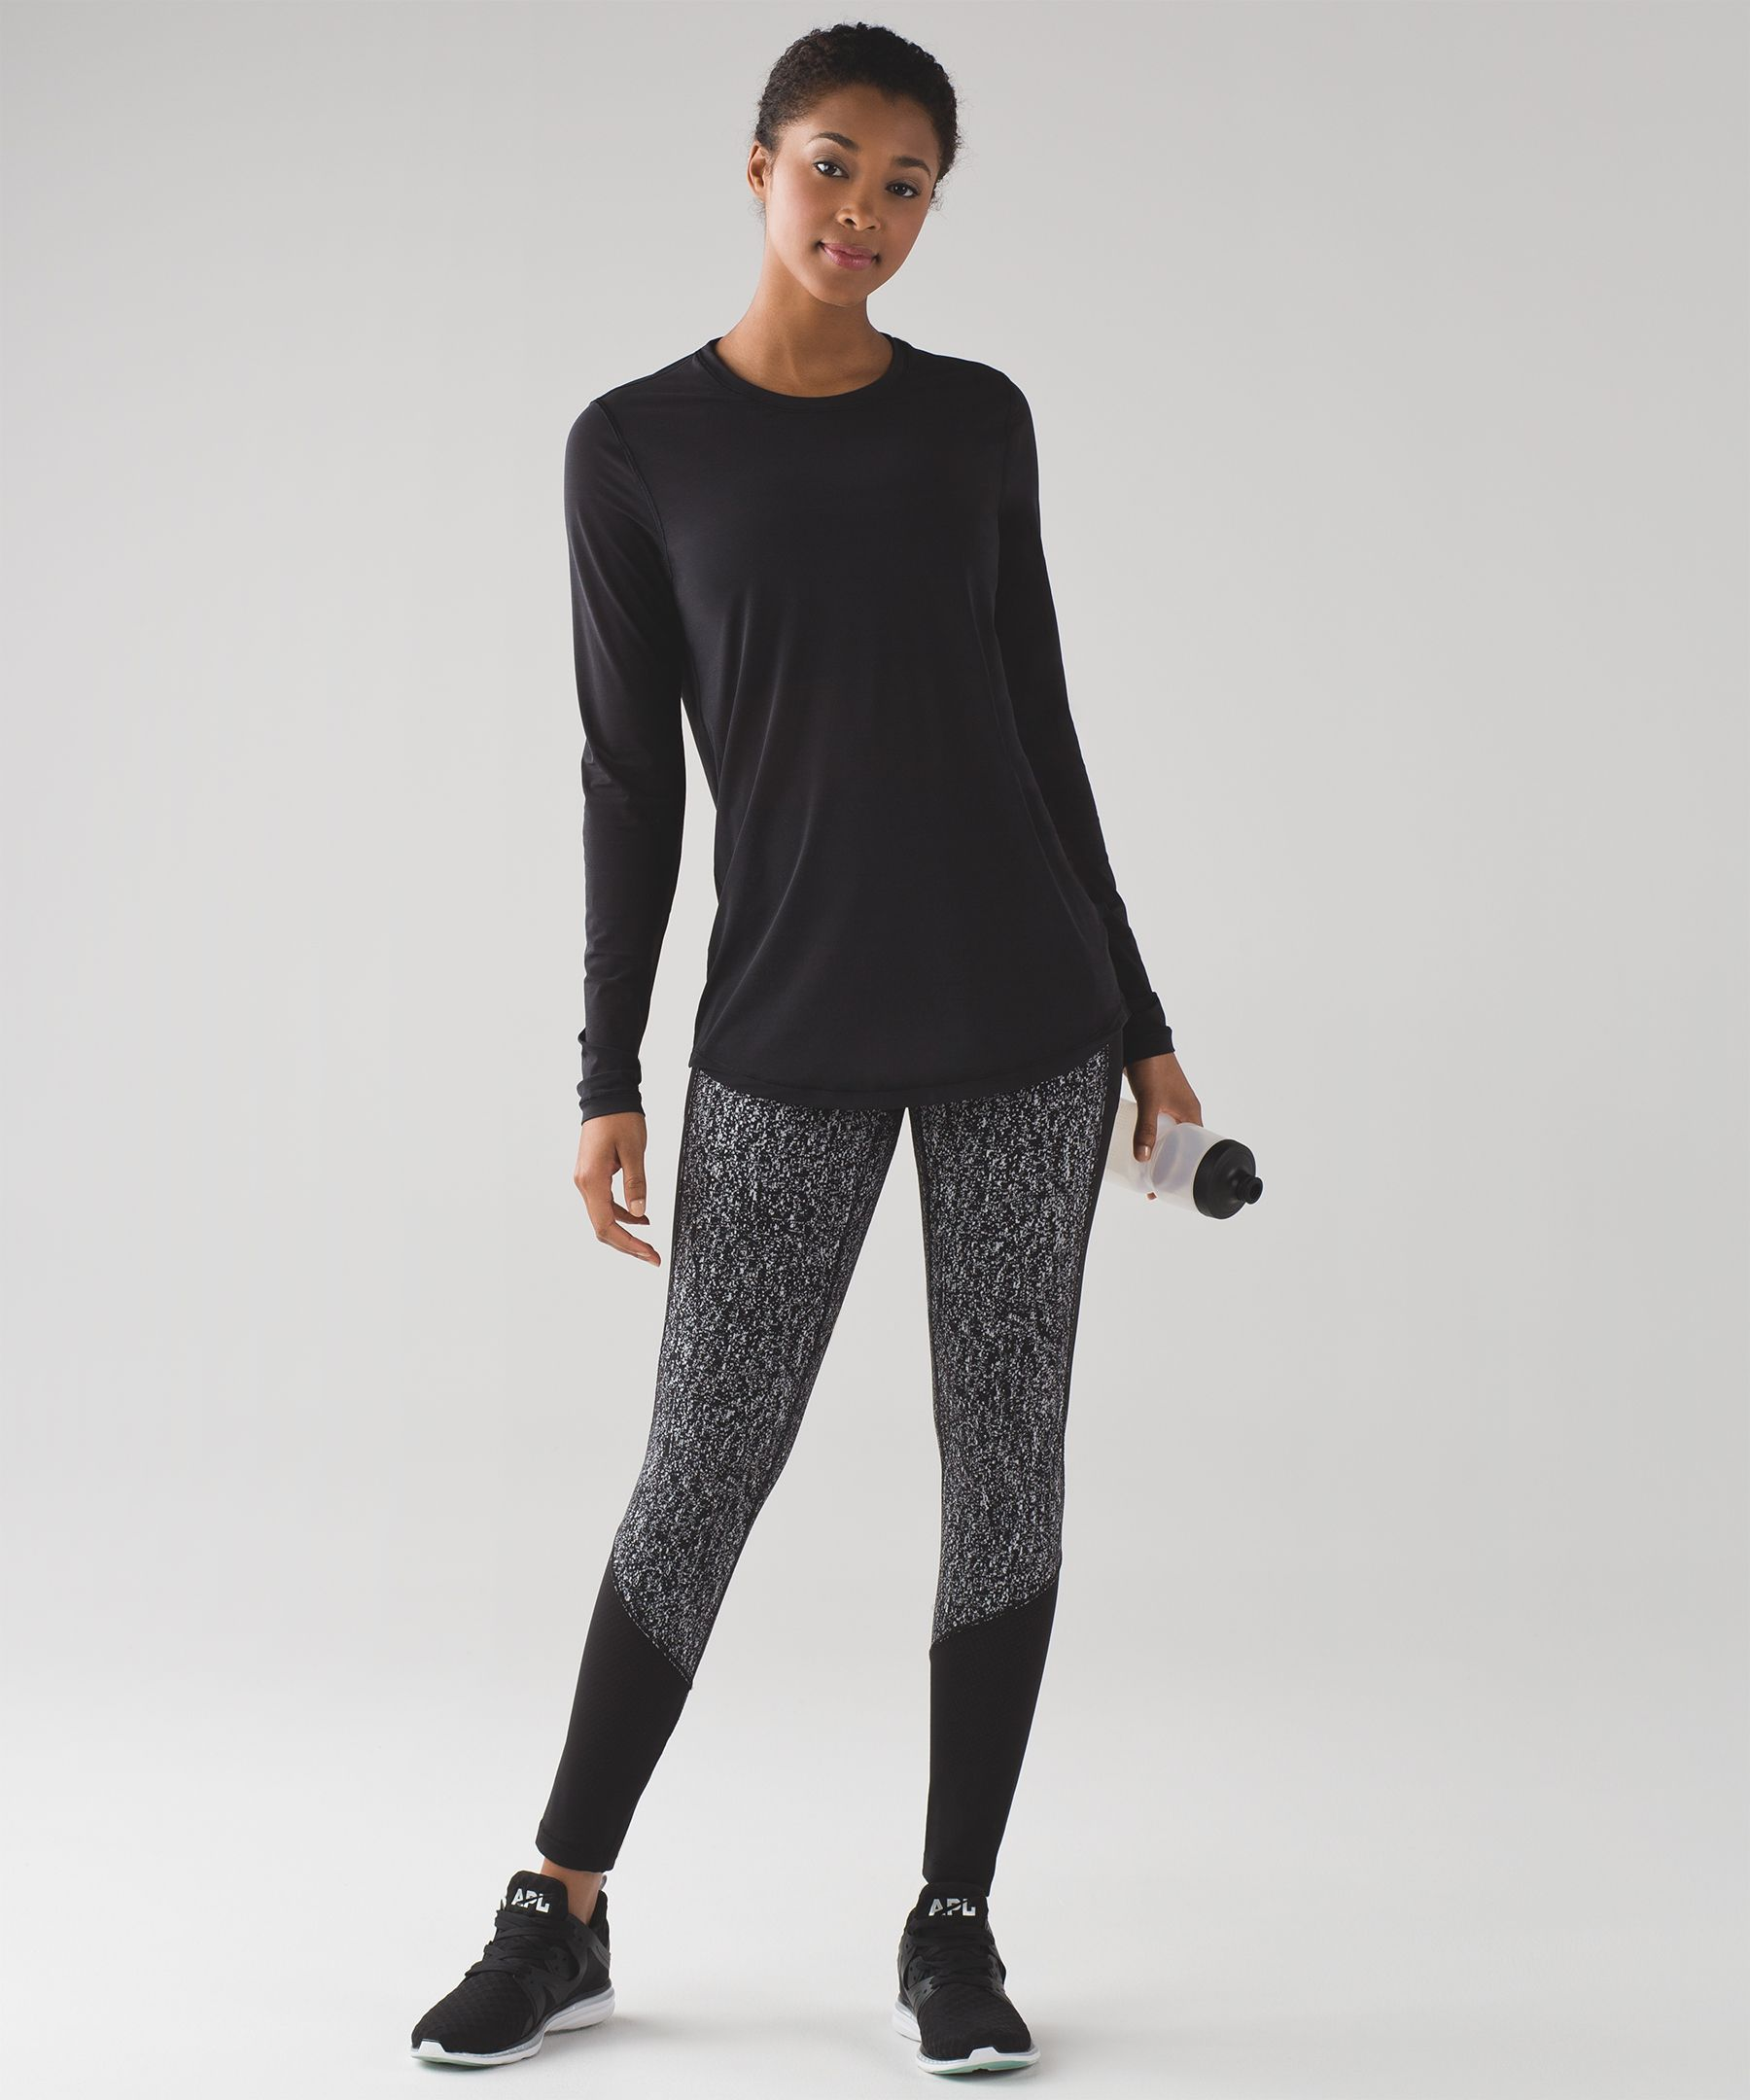 Fit Physique Long Sleeve